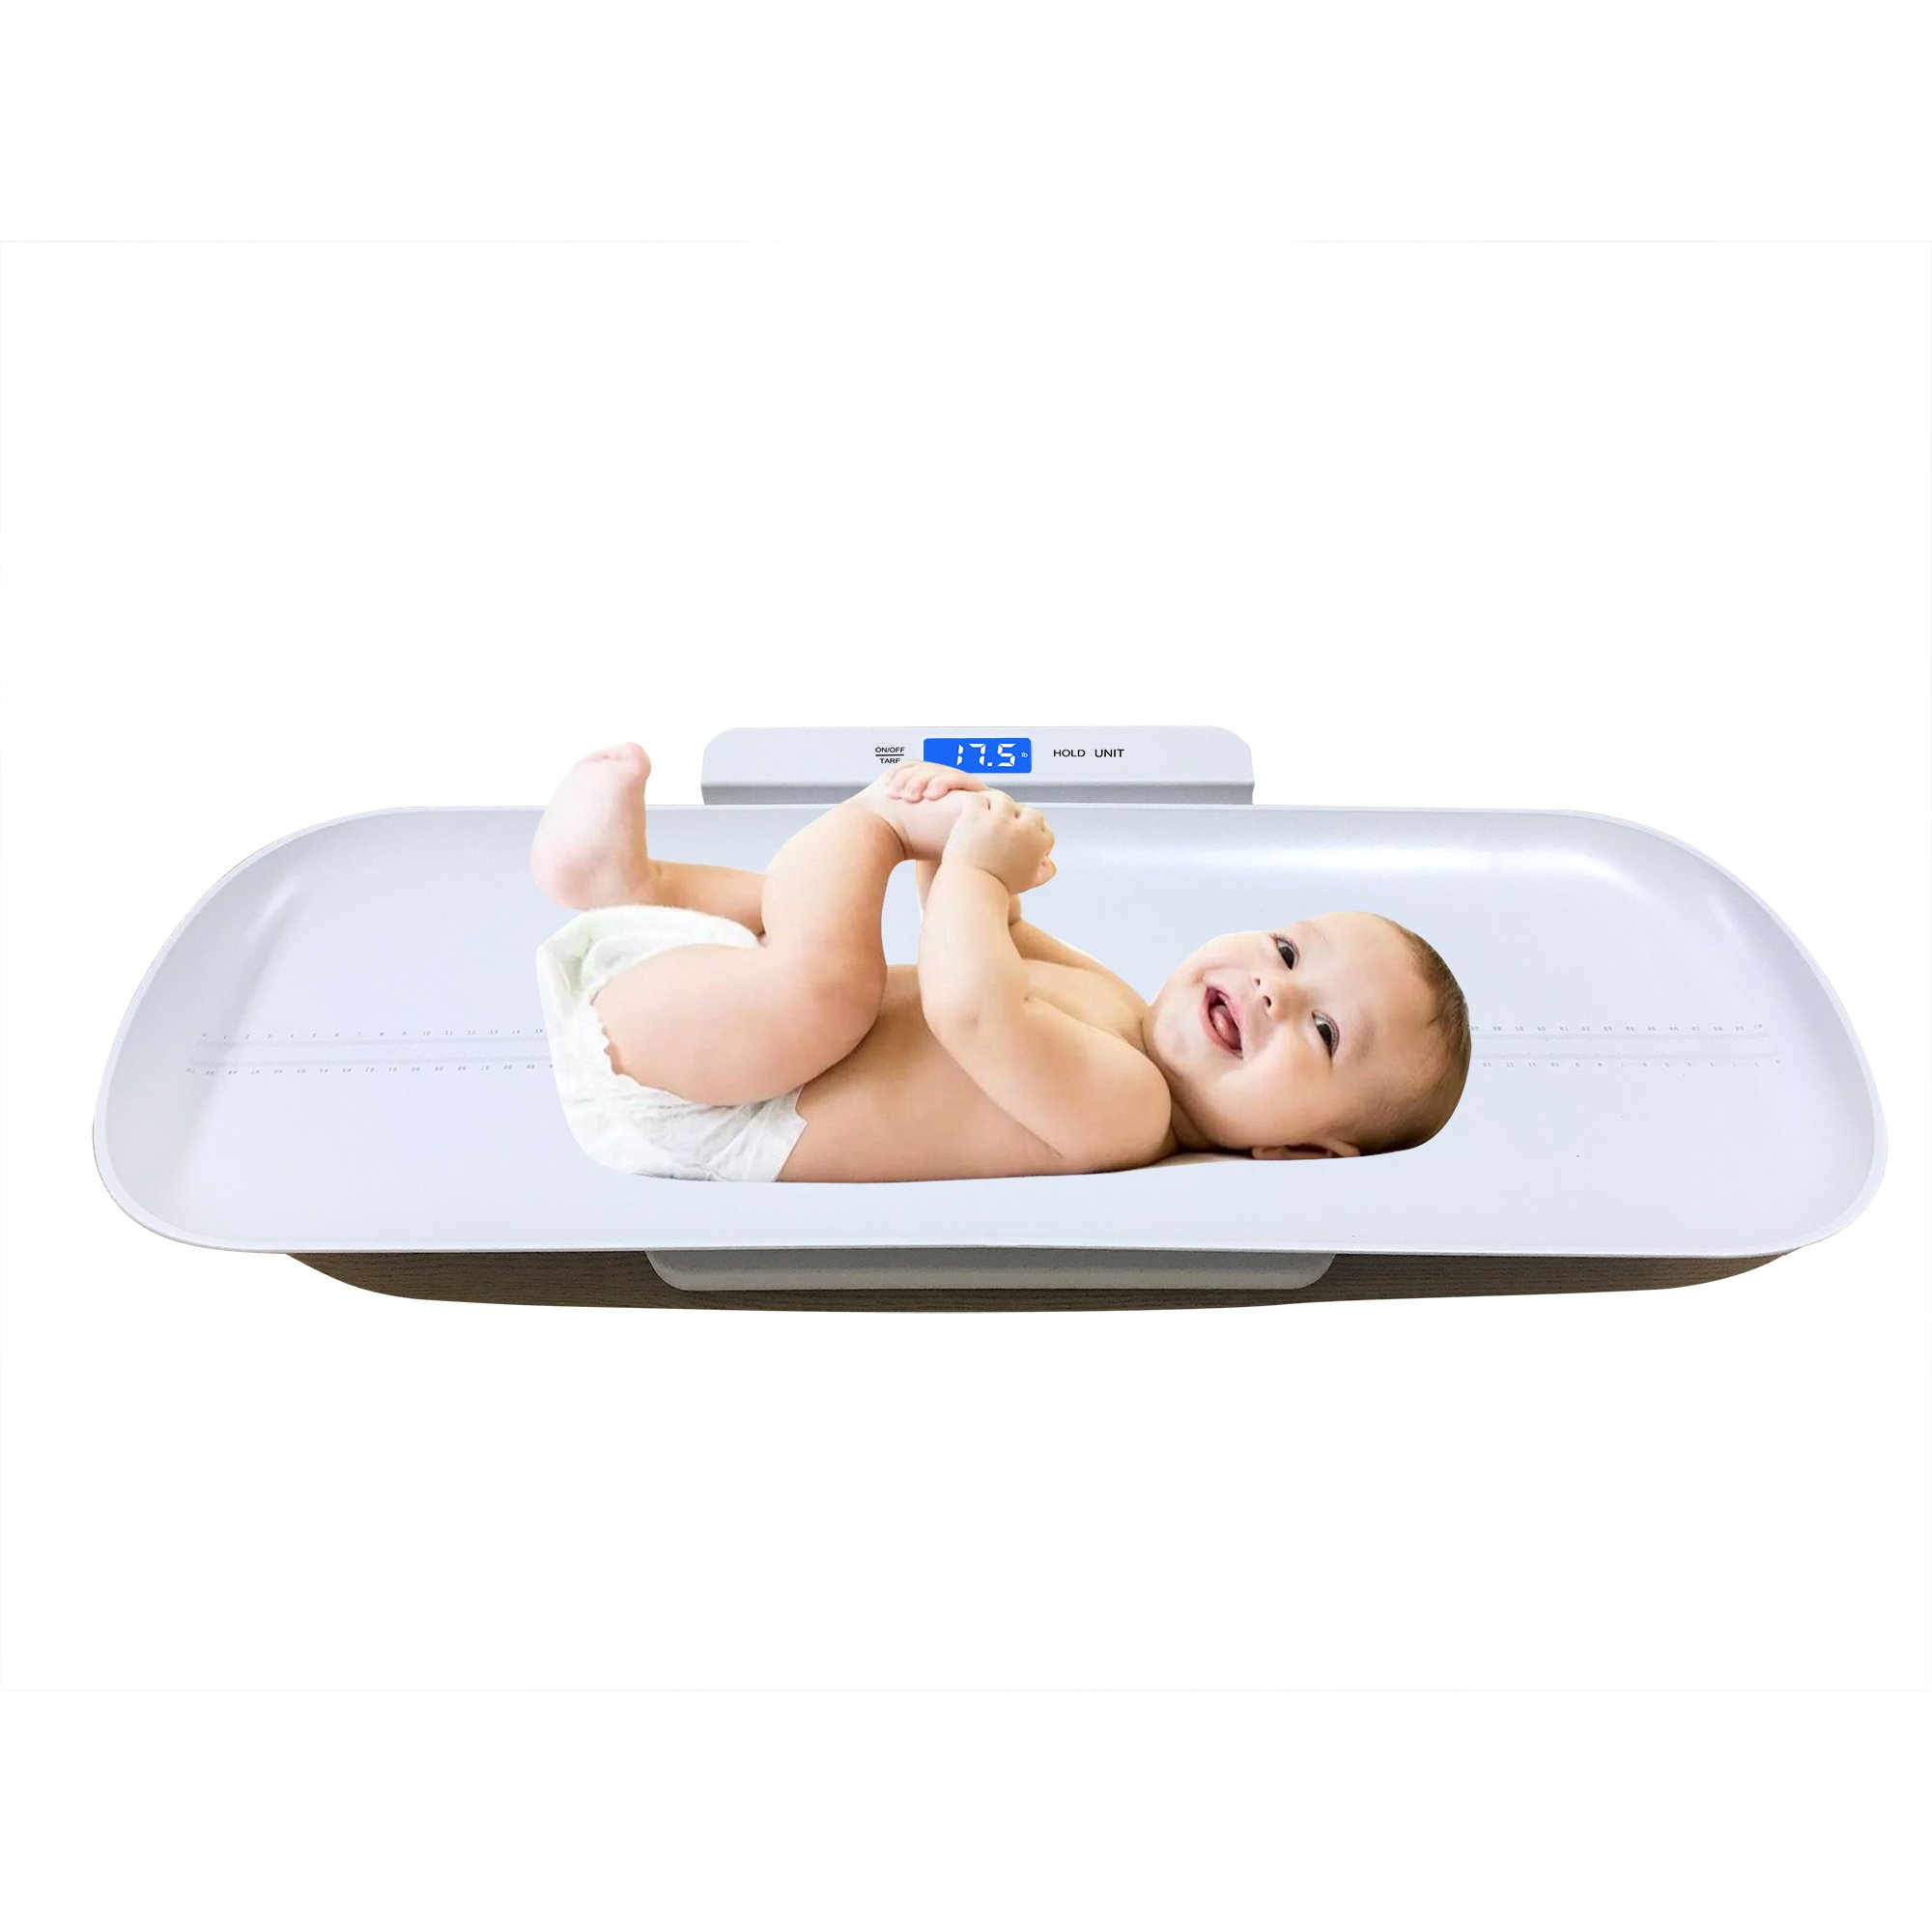 Multi-Function Digital Baby Scale Measure Infant/Baby/Adult Weight Accurately, 220 Pound (lbs) Capacity with Precision of 10g, Blue Backlight, 70 cm Length (Cream)